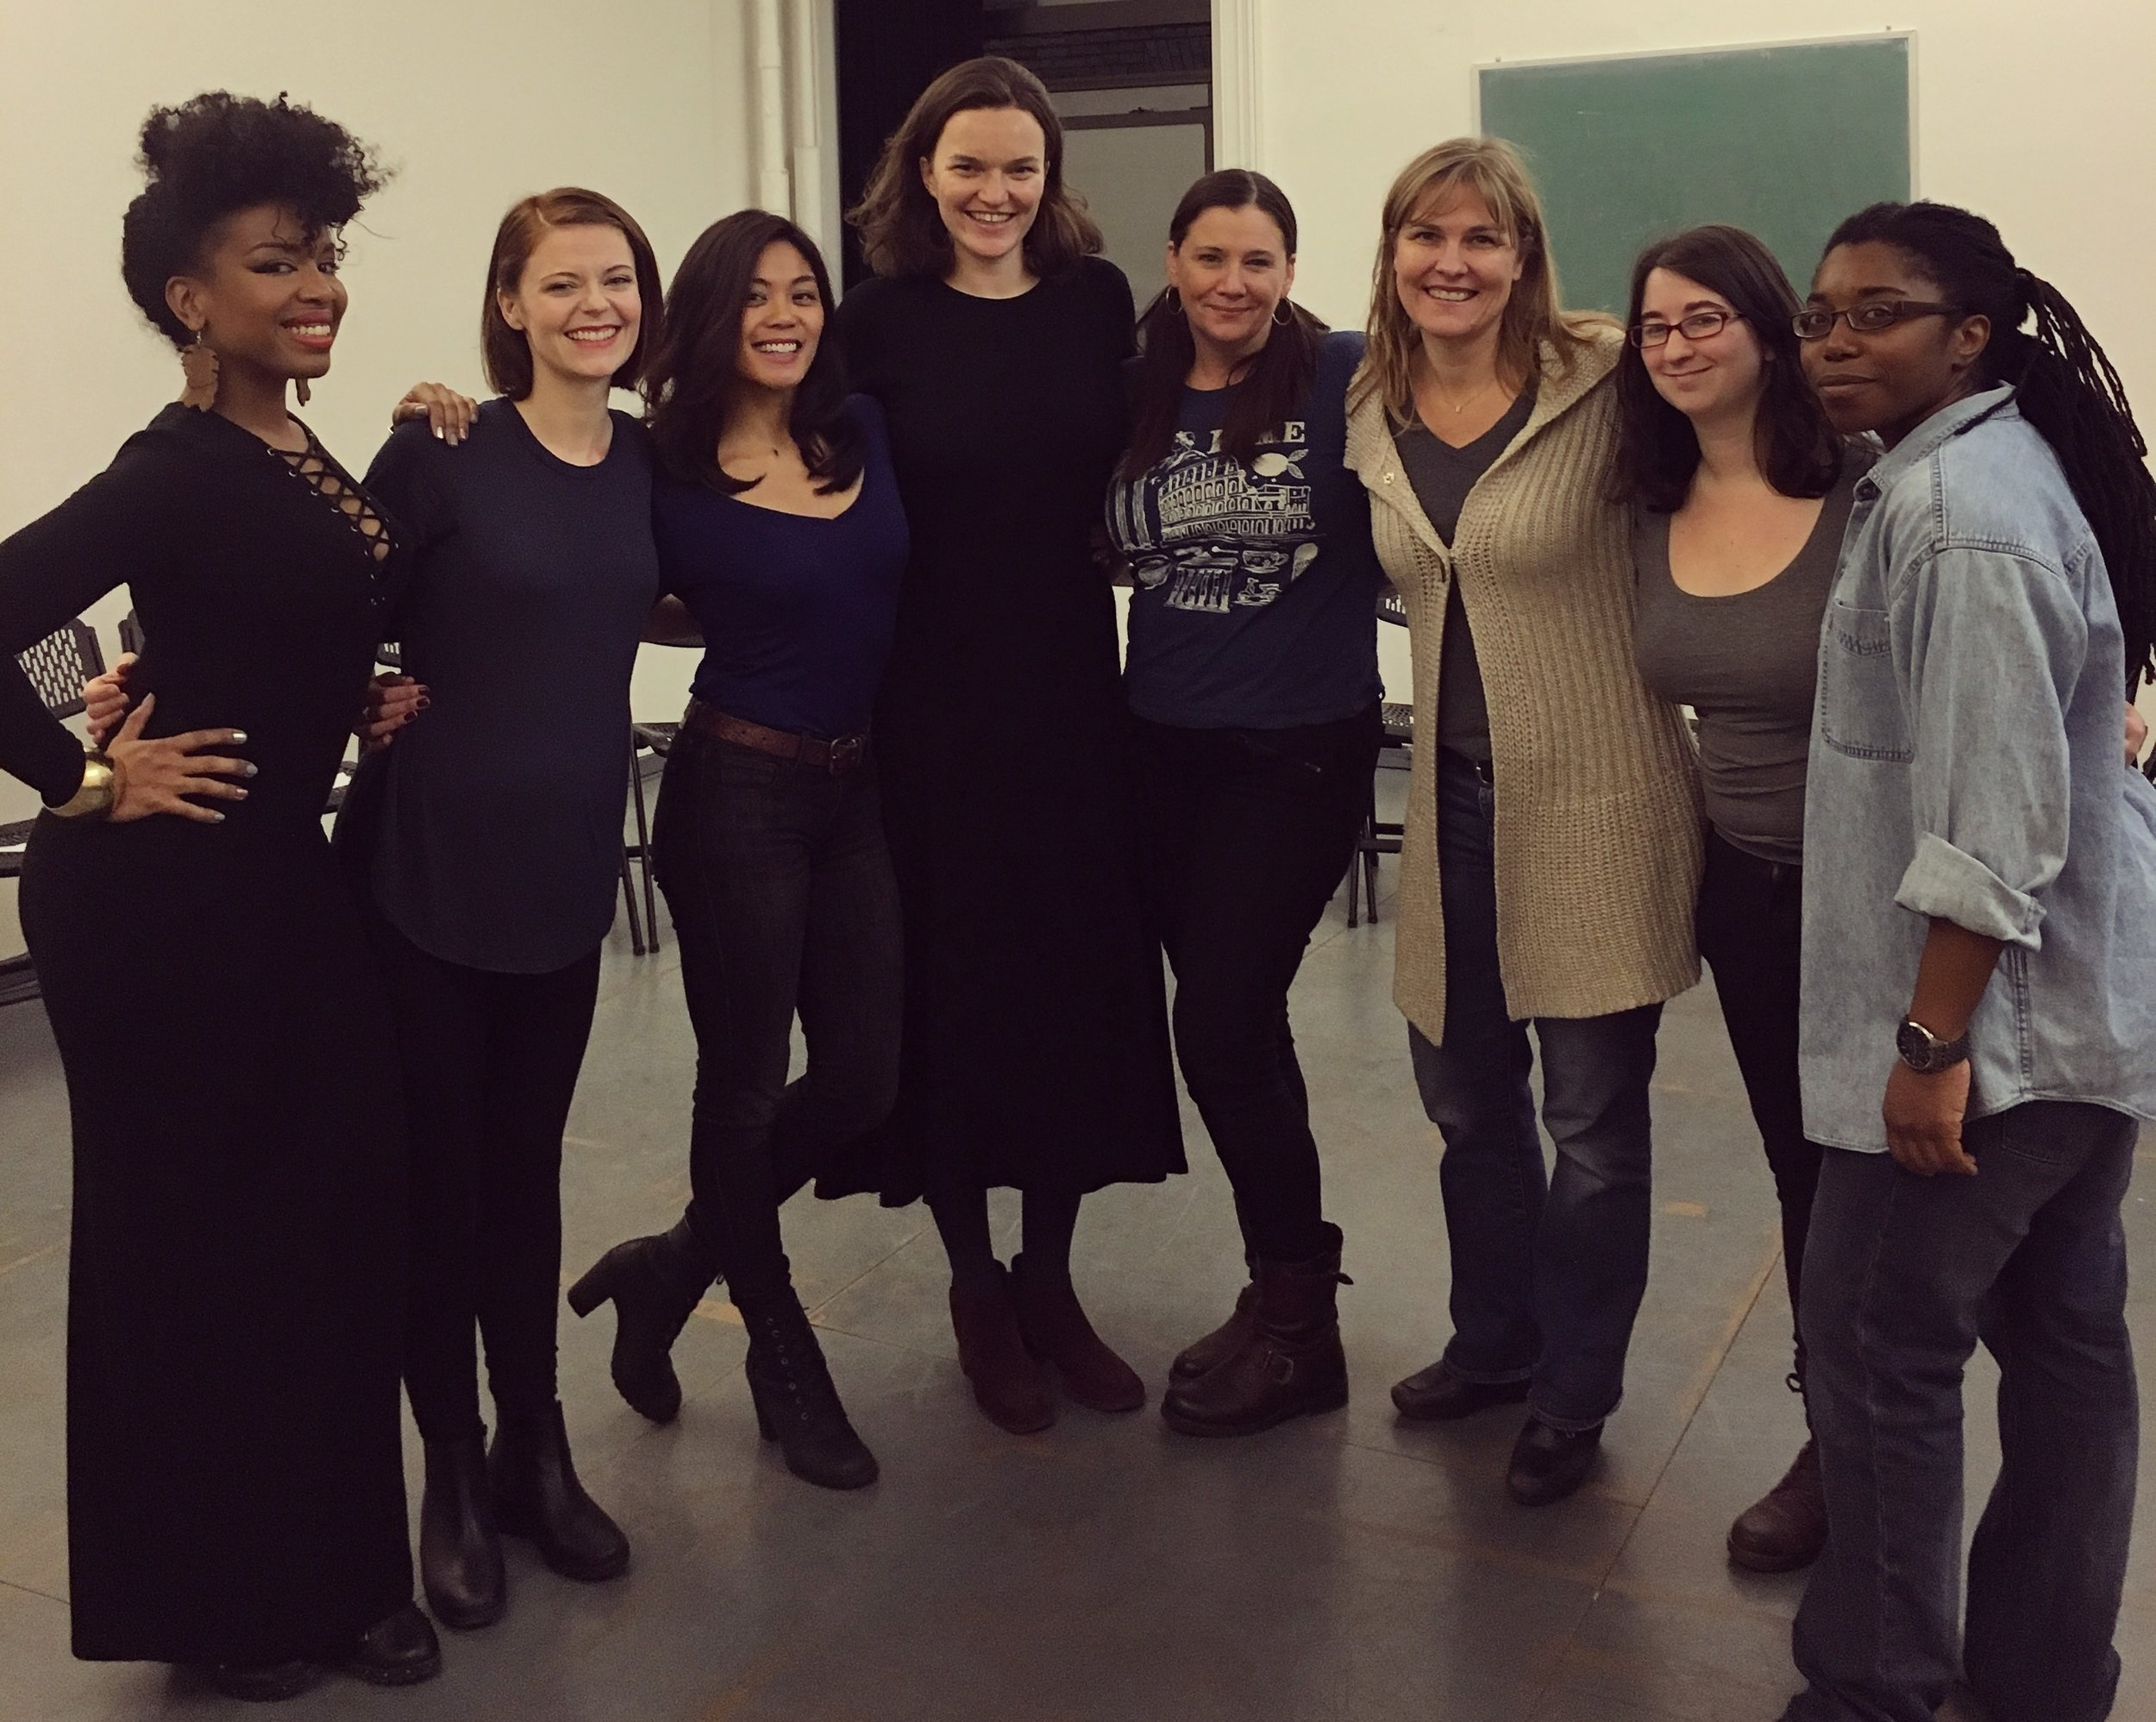 The company of THE MESSENGER by Olivia Dufault  (left to right) Jessica Frances Dukes, Stephanie Wright Thompson, Teresa Avia Lim, Caitlin Ryan O'Connell, Elizabeth Kenny, Kelly McAndrew, Lilly Deerwater, and Donnetta Lavinia Grays